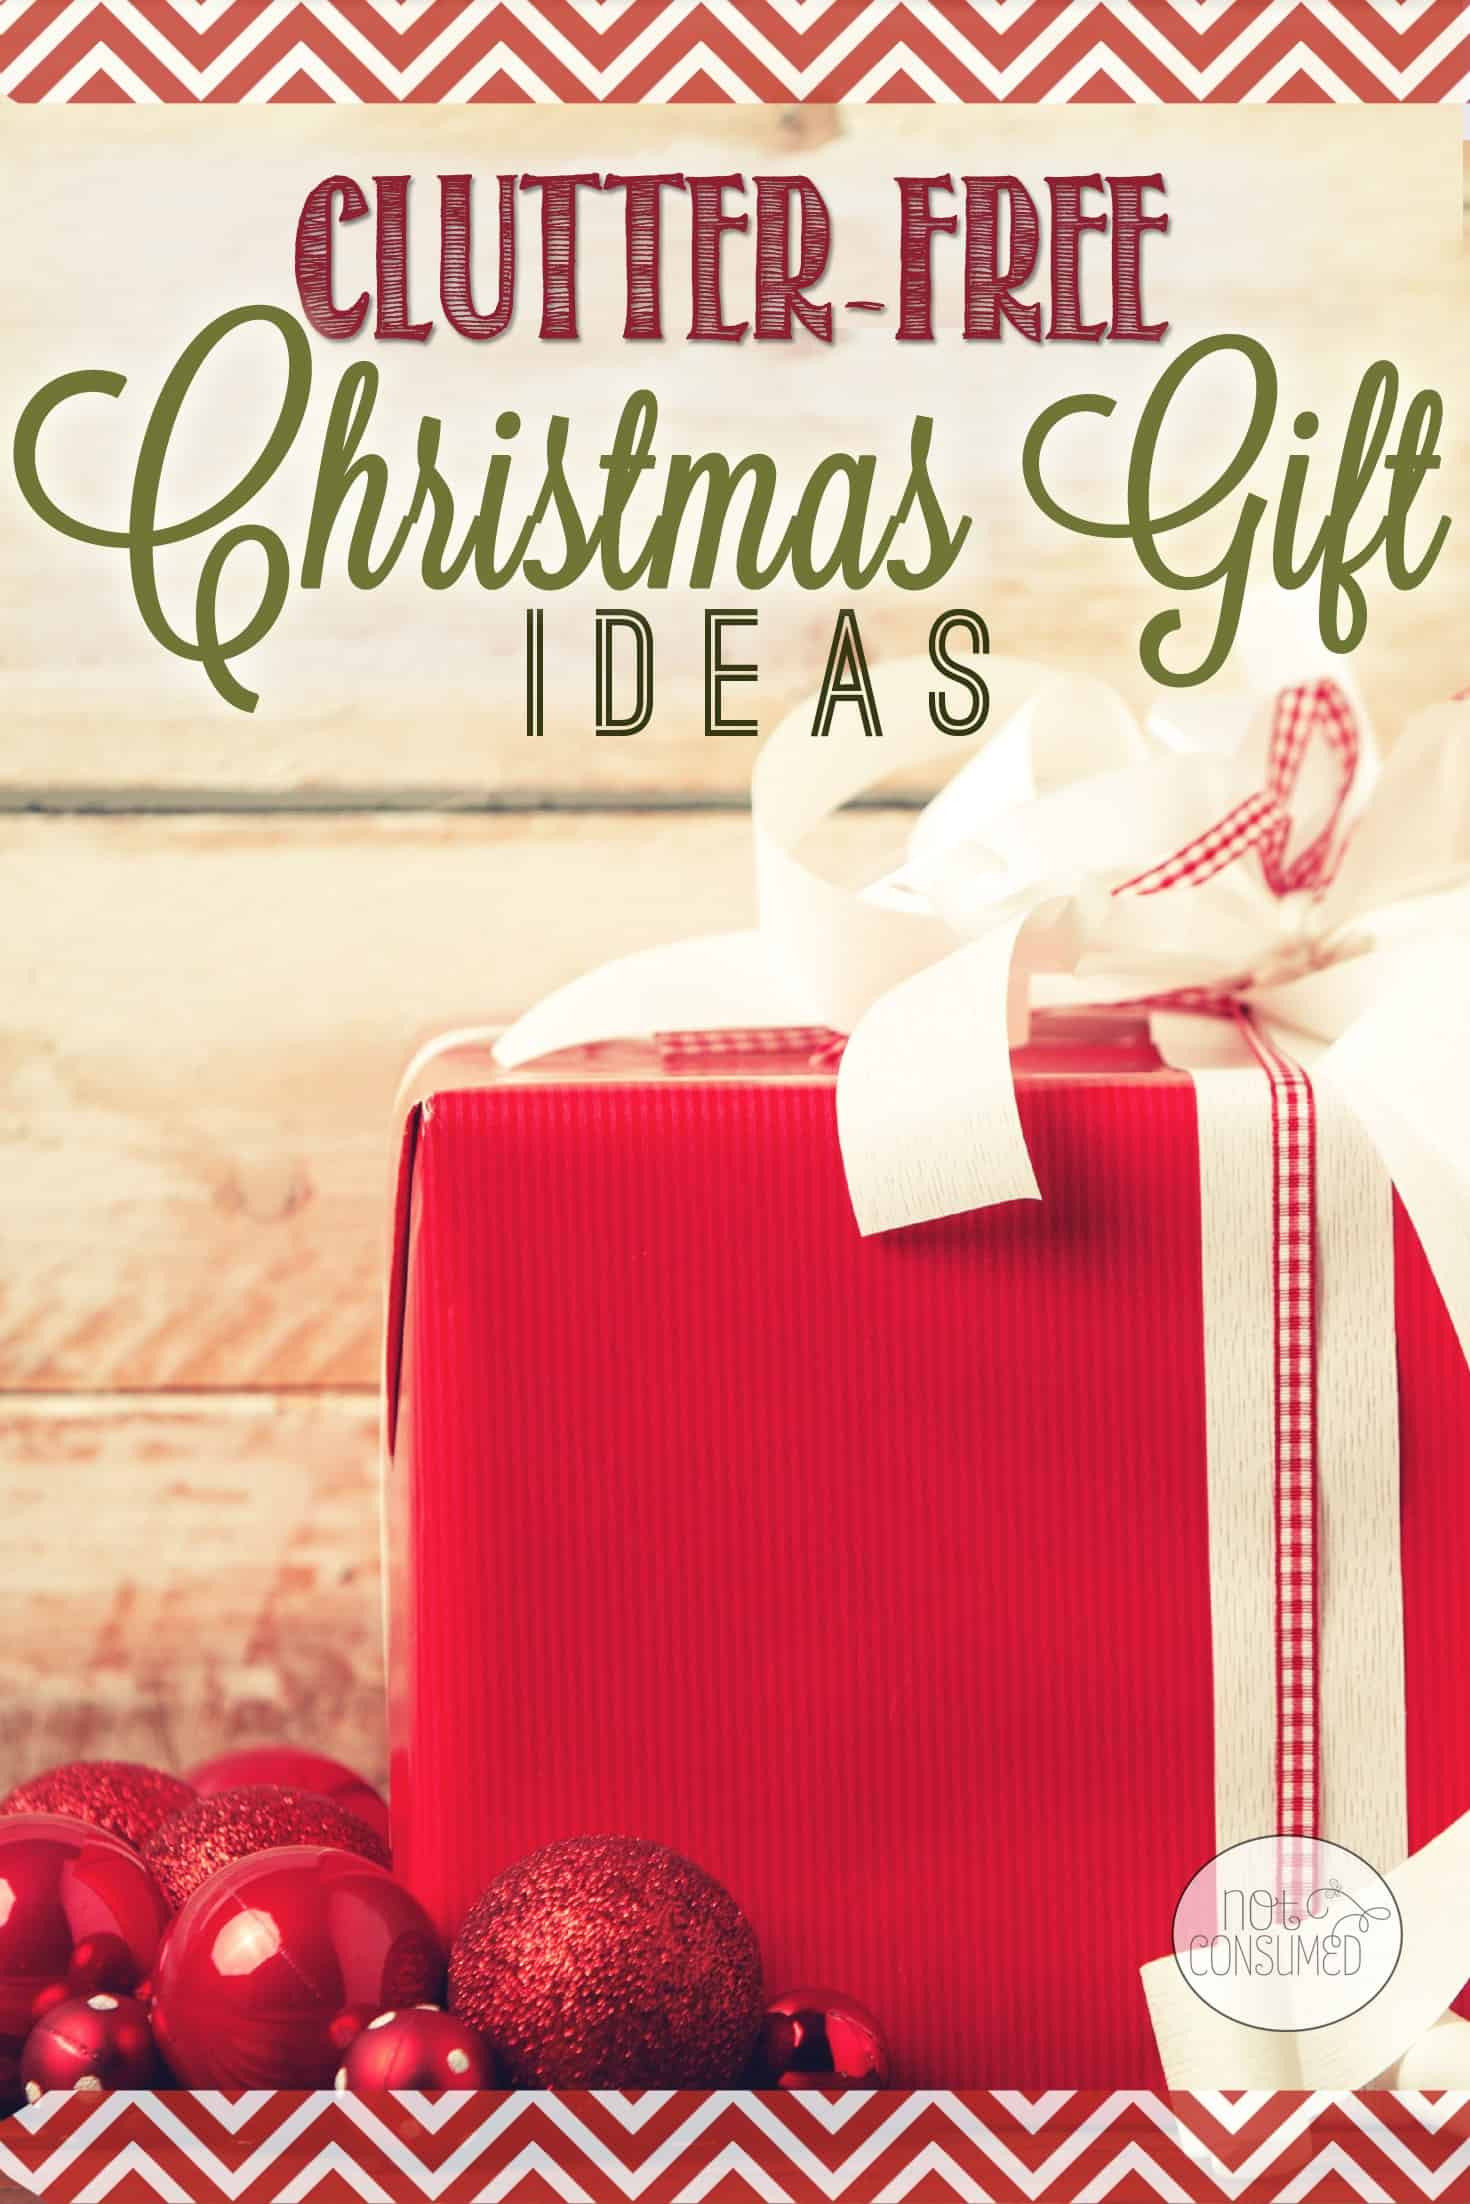 Best ideas about Free Gift Ideas . Save or Pin Clutter Free Christmas Gift Ideas Now.